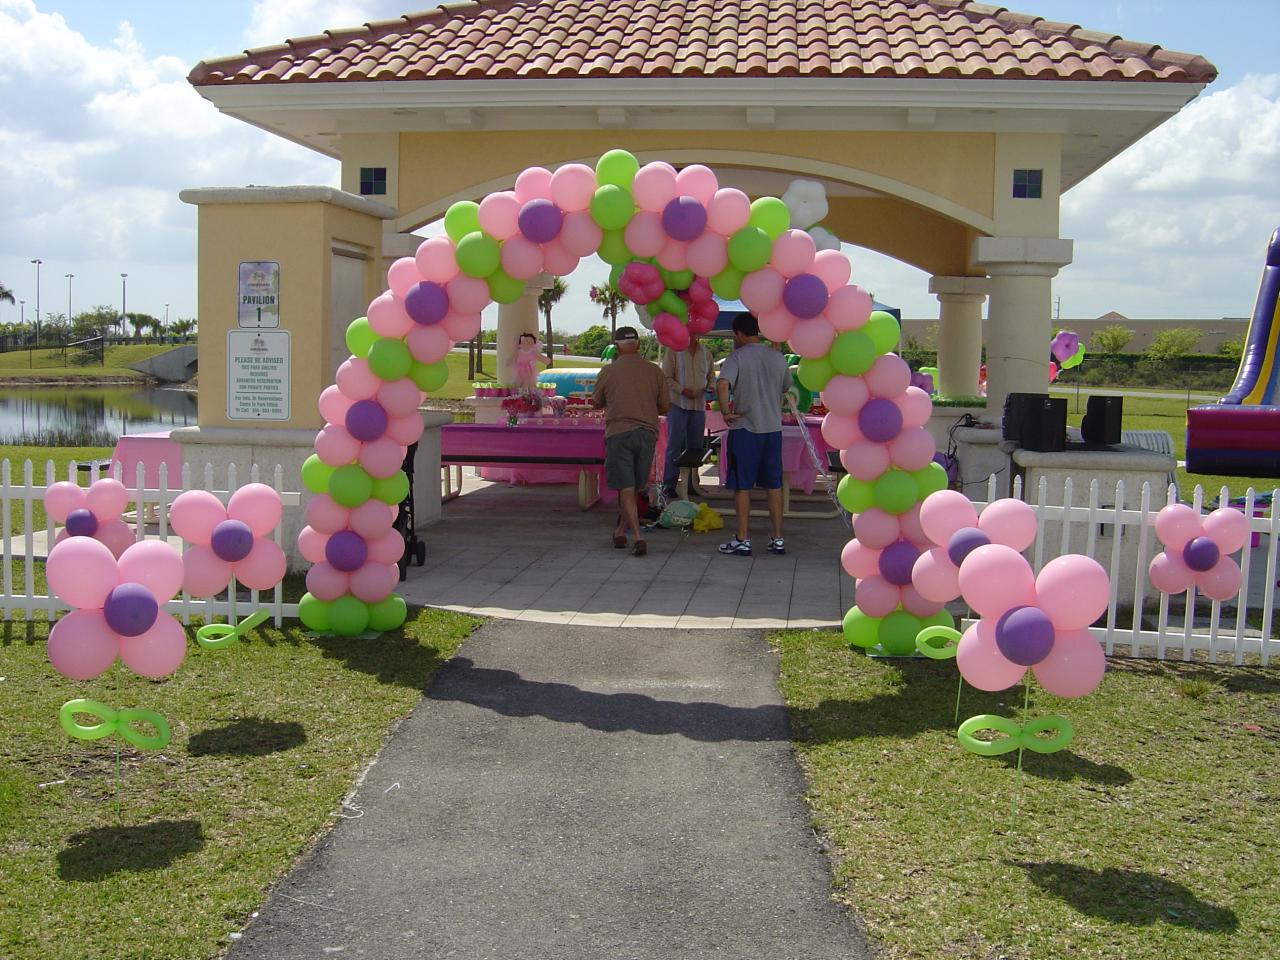 1000 images about balloons on pinterest balloon for Balloon decoration arches